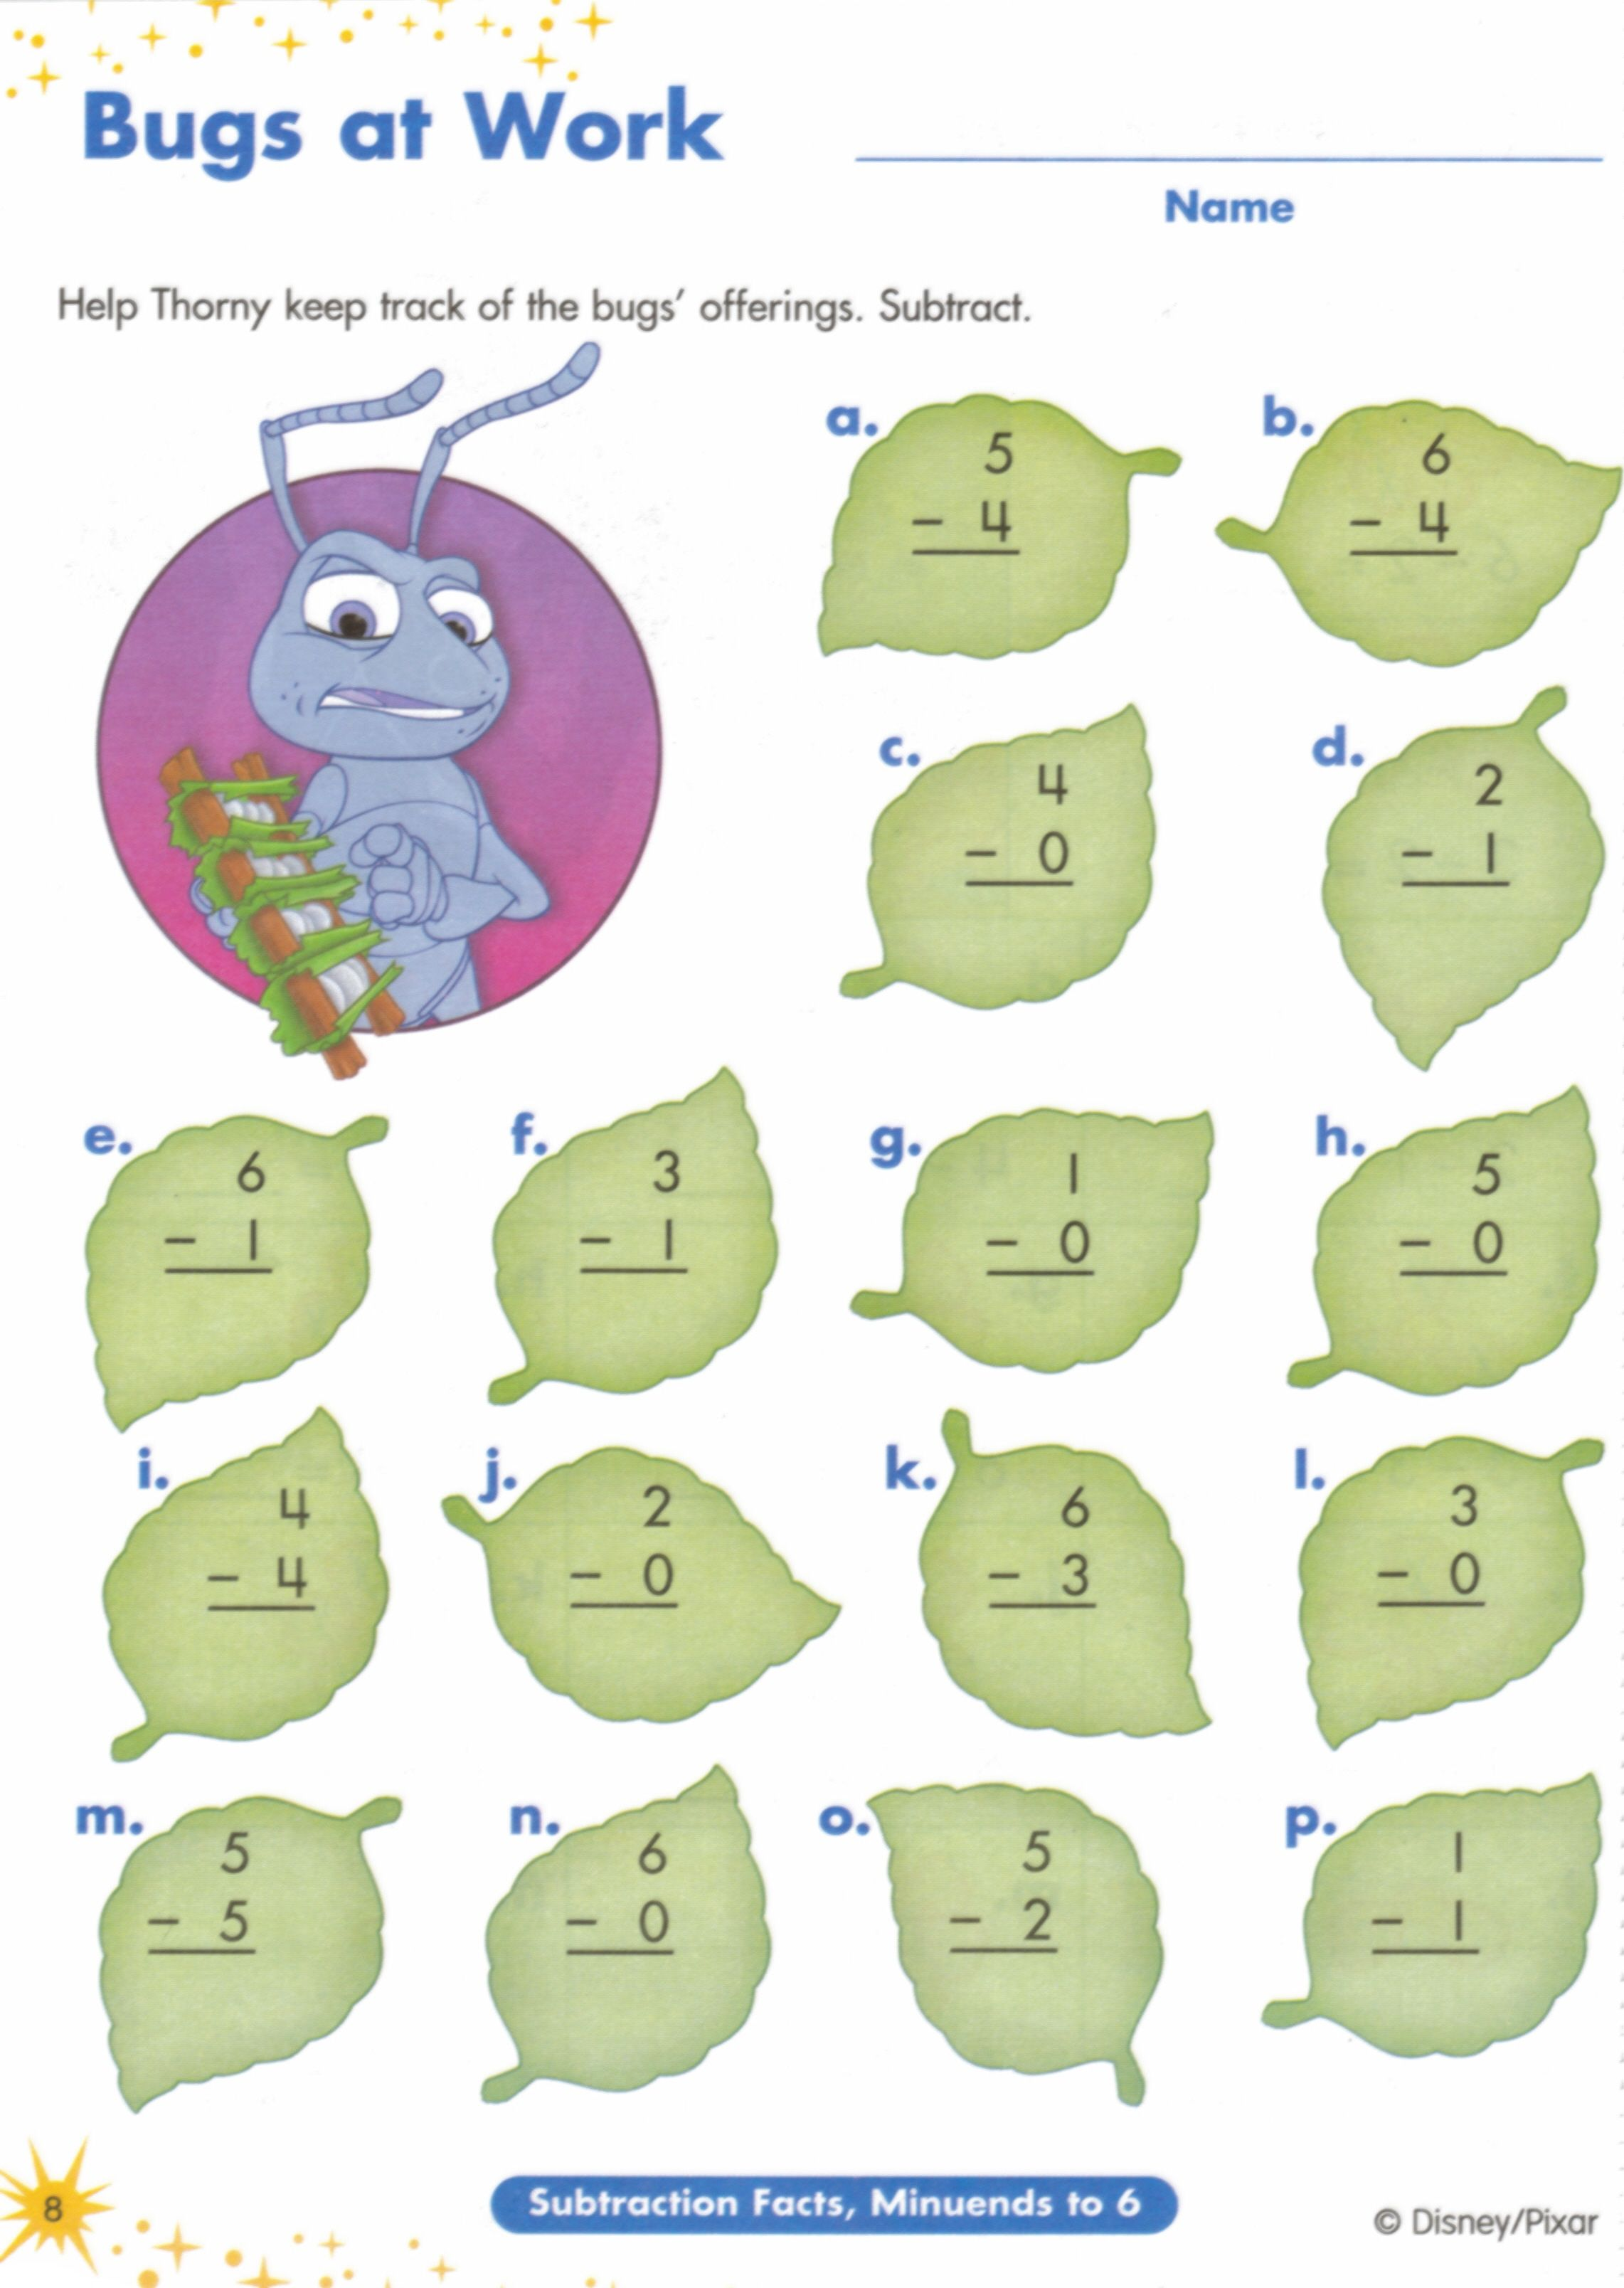 Proatmealus  Nice  Images About Worksheets On Pinterest  Fun Facts For Kids  With Great  Images About Worksheets On Pinterest  Fun Facts For Kids Earth Day Worksheets And Jungles With Appealing Free Time Activities Worksheet Also Ordinal Worksheet In Addition Law Of Conservation Of Mass Worksheets And In On Worksheets Kindergarten As Well As Year Two Maths Worksheets Additionally Mode Median And Mean Worksheets From Pinterestcom With Proatmealus  Great  Images About Worksheets On Pinterest  Fun Facts For Kids  With Appealing  Images About Worksheets On Pinterest  Fun Facts For Kids Earth Day Worksheets And Jungles And Nice Free Time Activities Worksheet Also Ordinal Worksheet In Addition Law Of Conservation Of Mass Worksheets From Pinterestcom